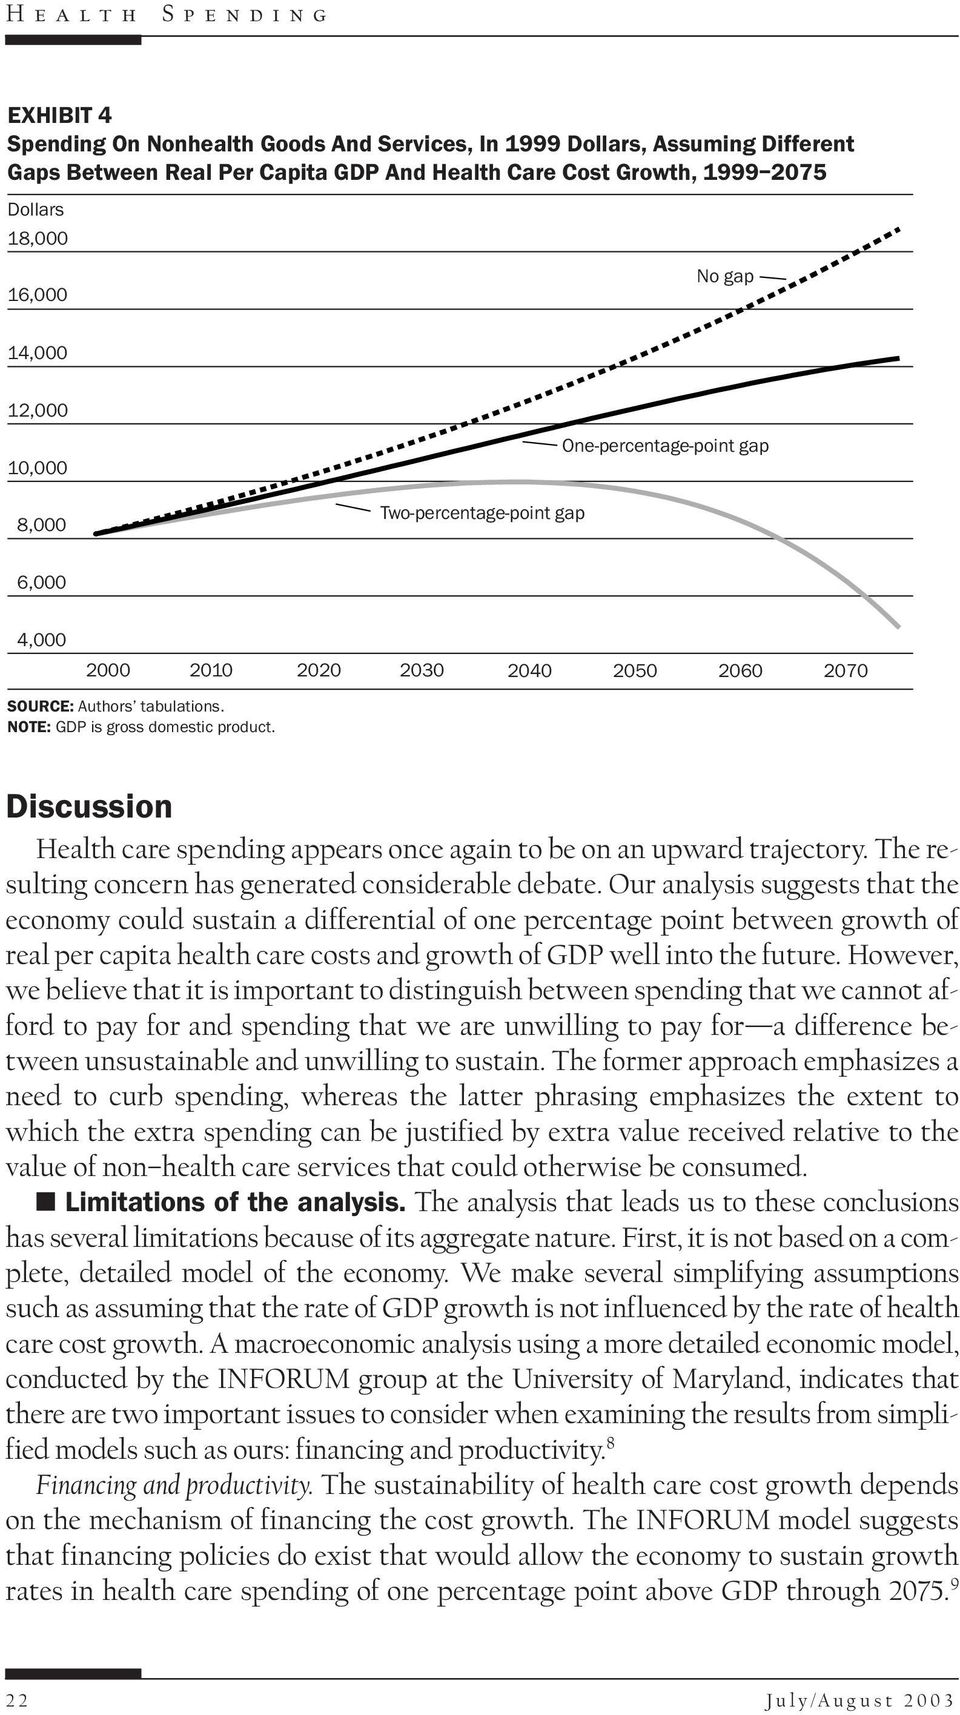 Discussion Health care spending appears once again to be on an upward trajectory. The resulting concern has generated considerable debate.